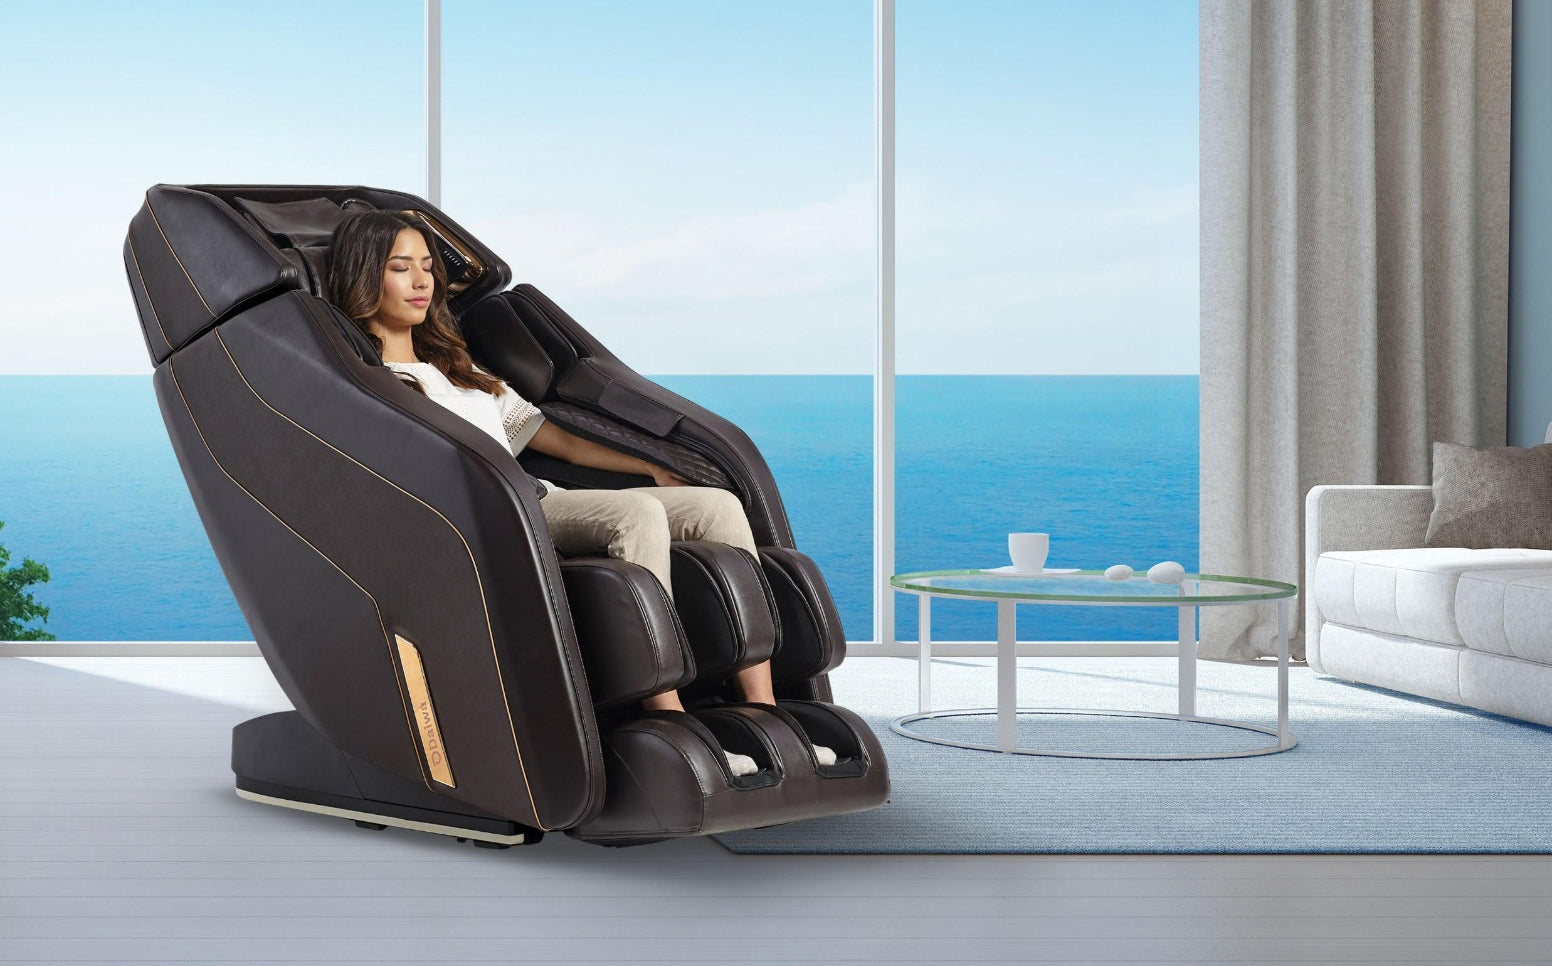 Daiwa Pegasus 2 Smart Massage Chair